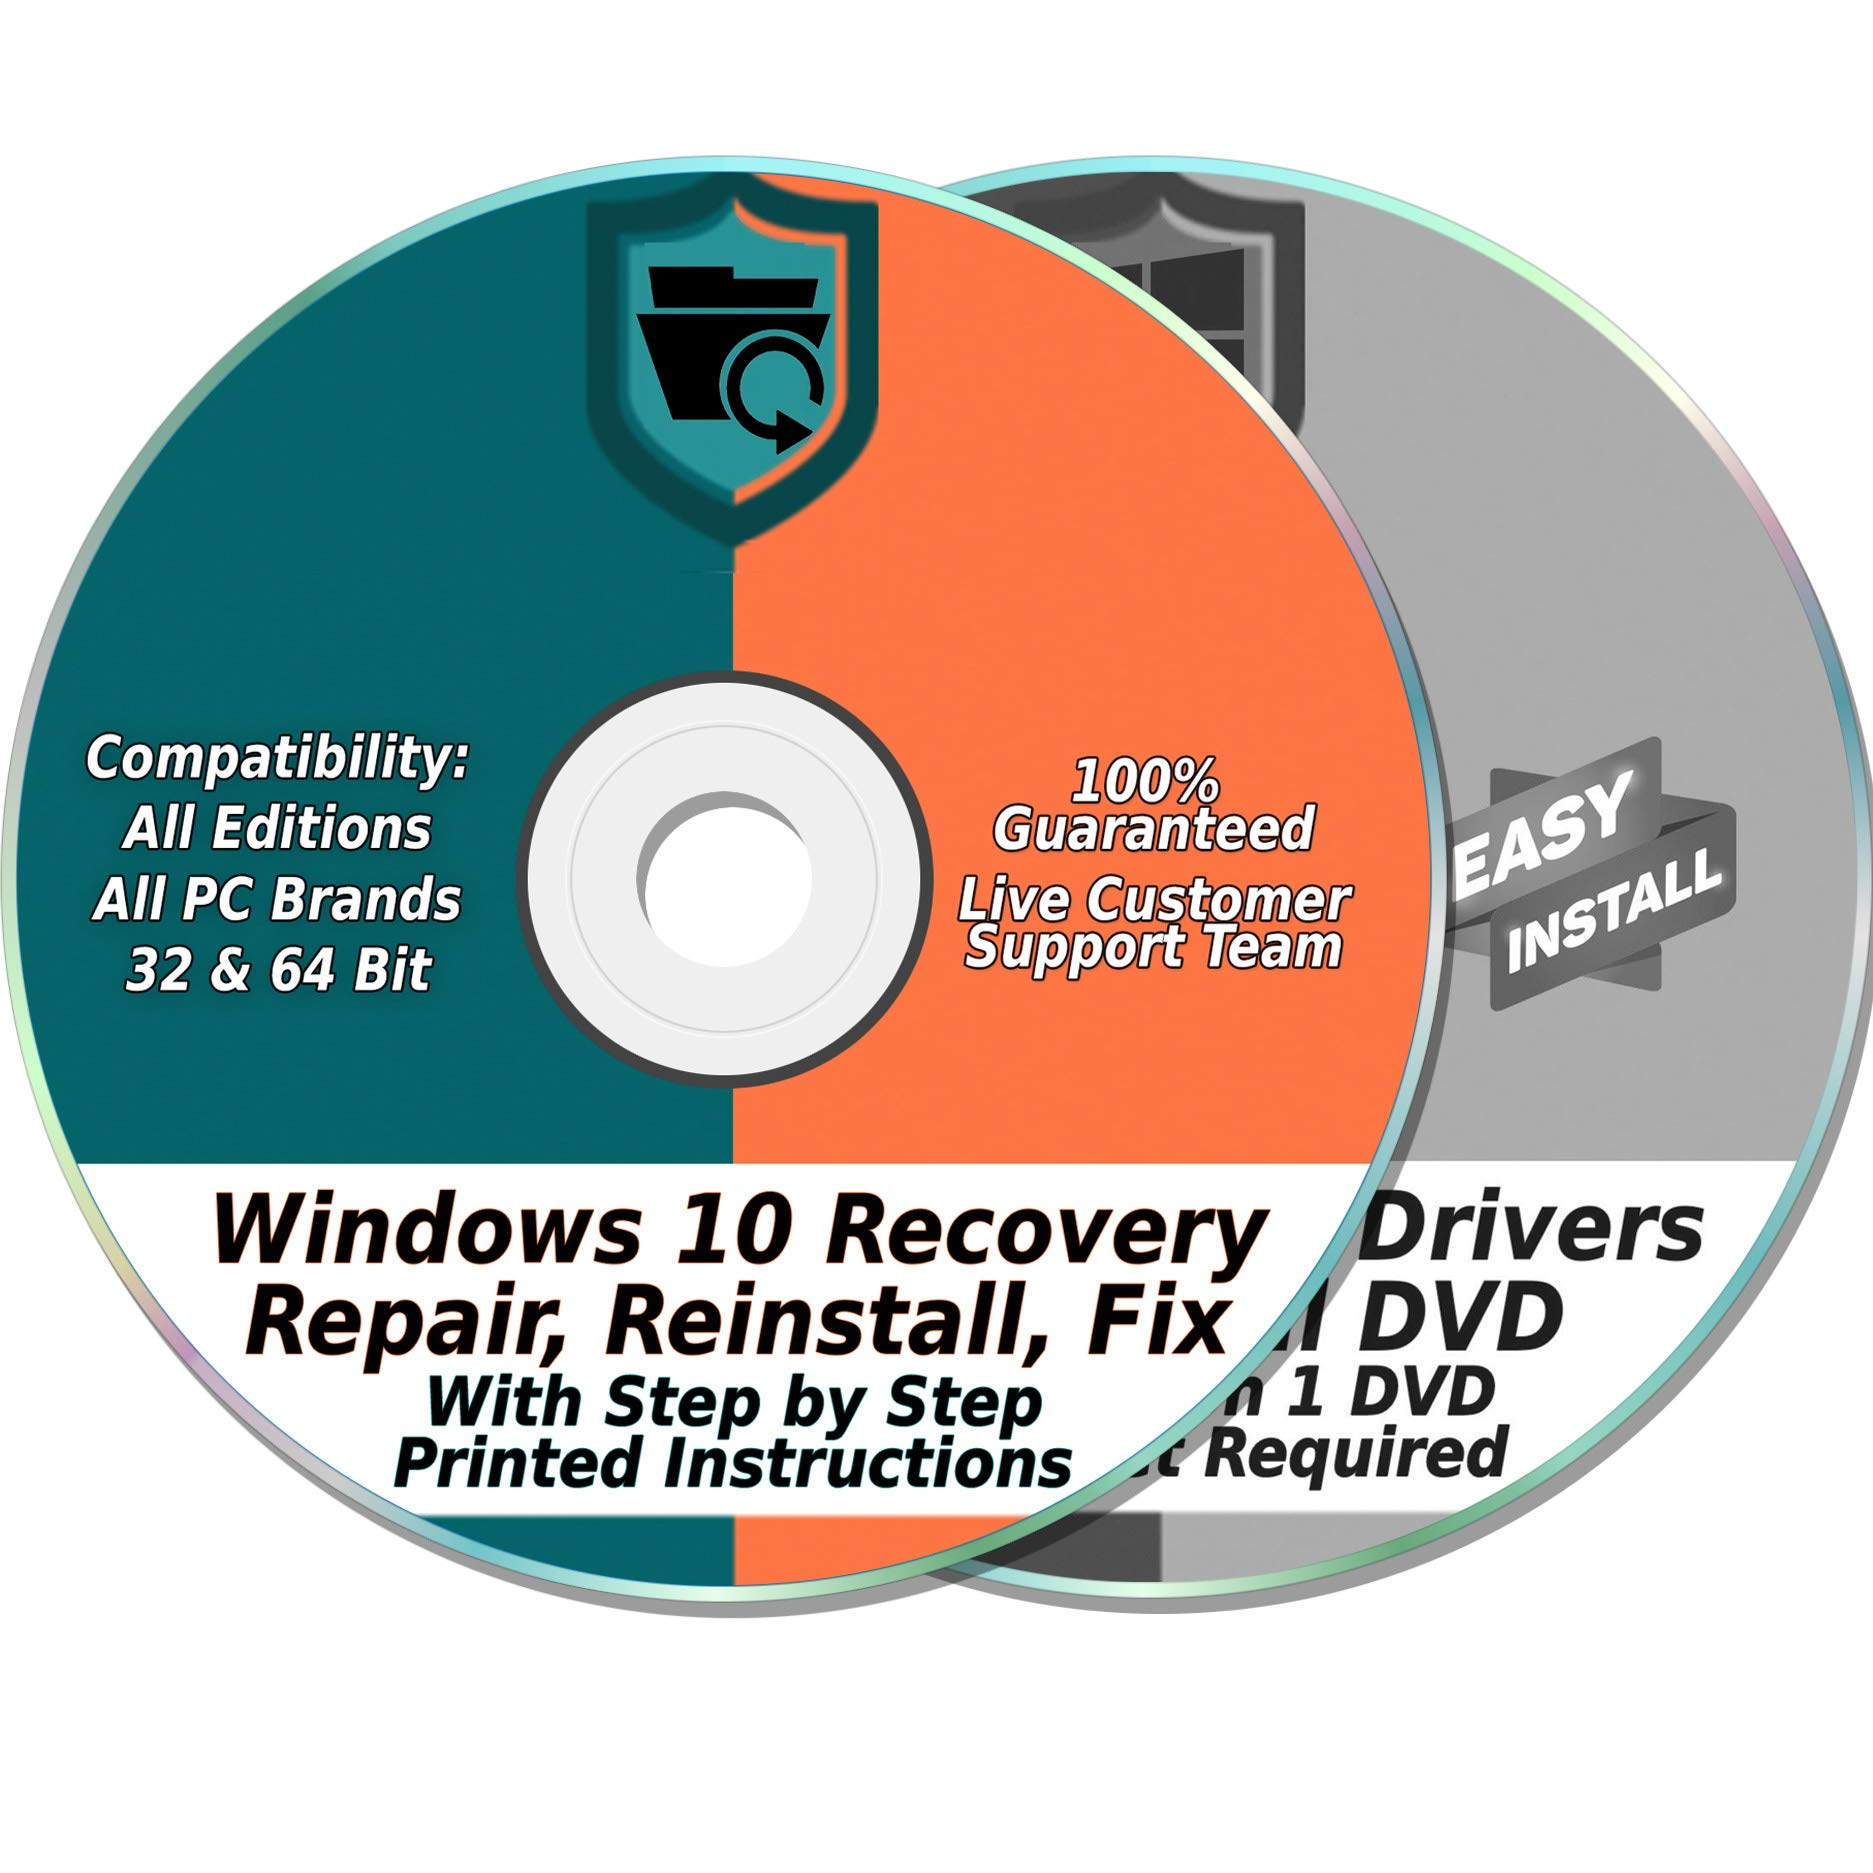 Windows 10 Compatible 32 & 64-Bit Install, Reset, Boot, Recovery, Restore, Repair & Fix Disk with 2018 Drivers 2 DVD Set for Home & Professional {All PC Brands & Systems} by Ezalink